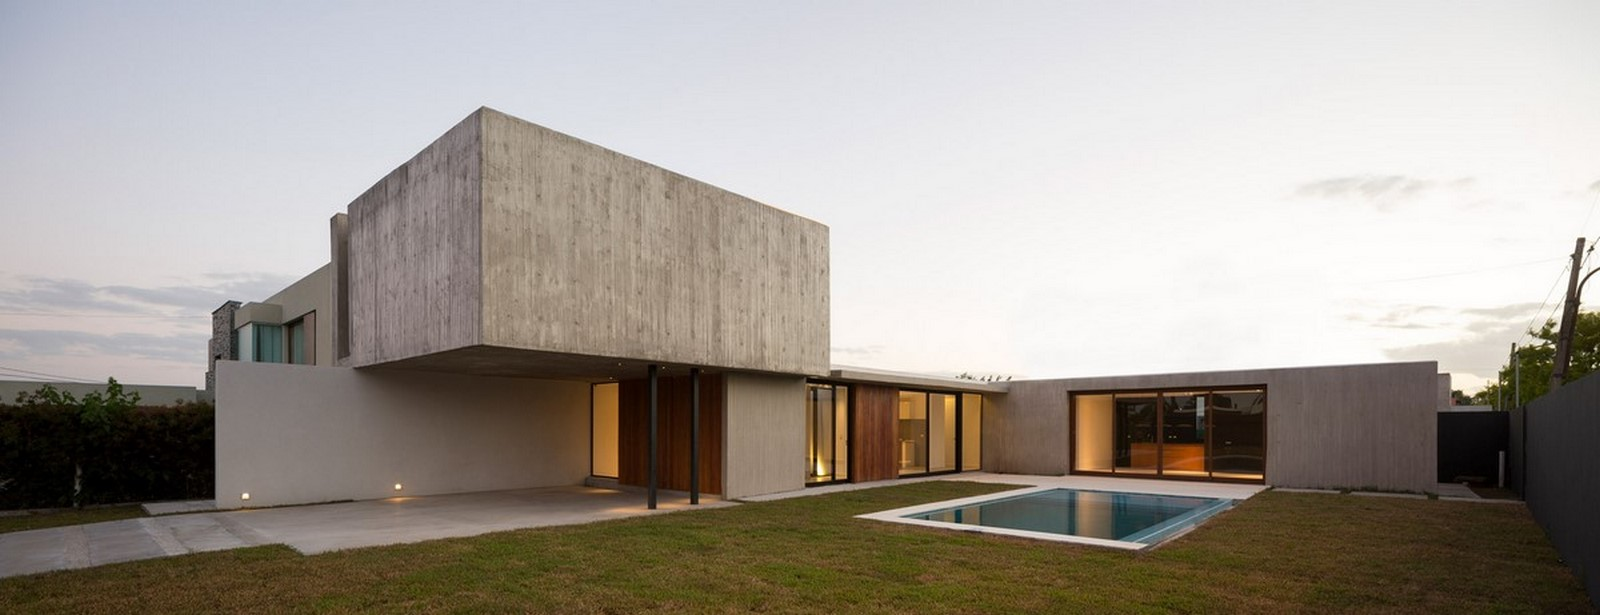 50 Examples of Modern concrete homes - Sheet23